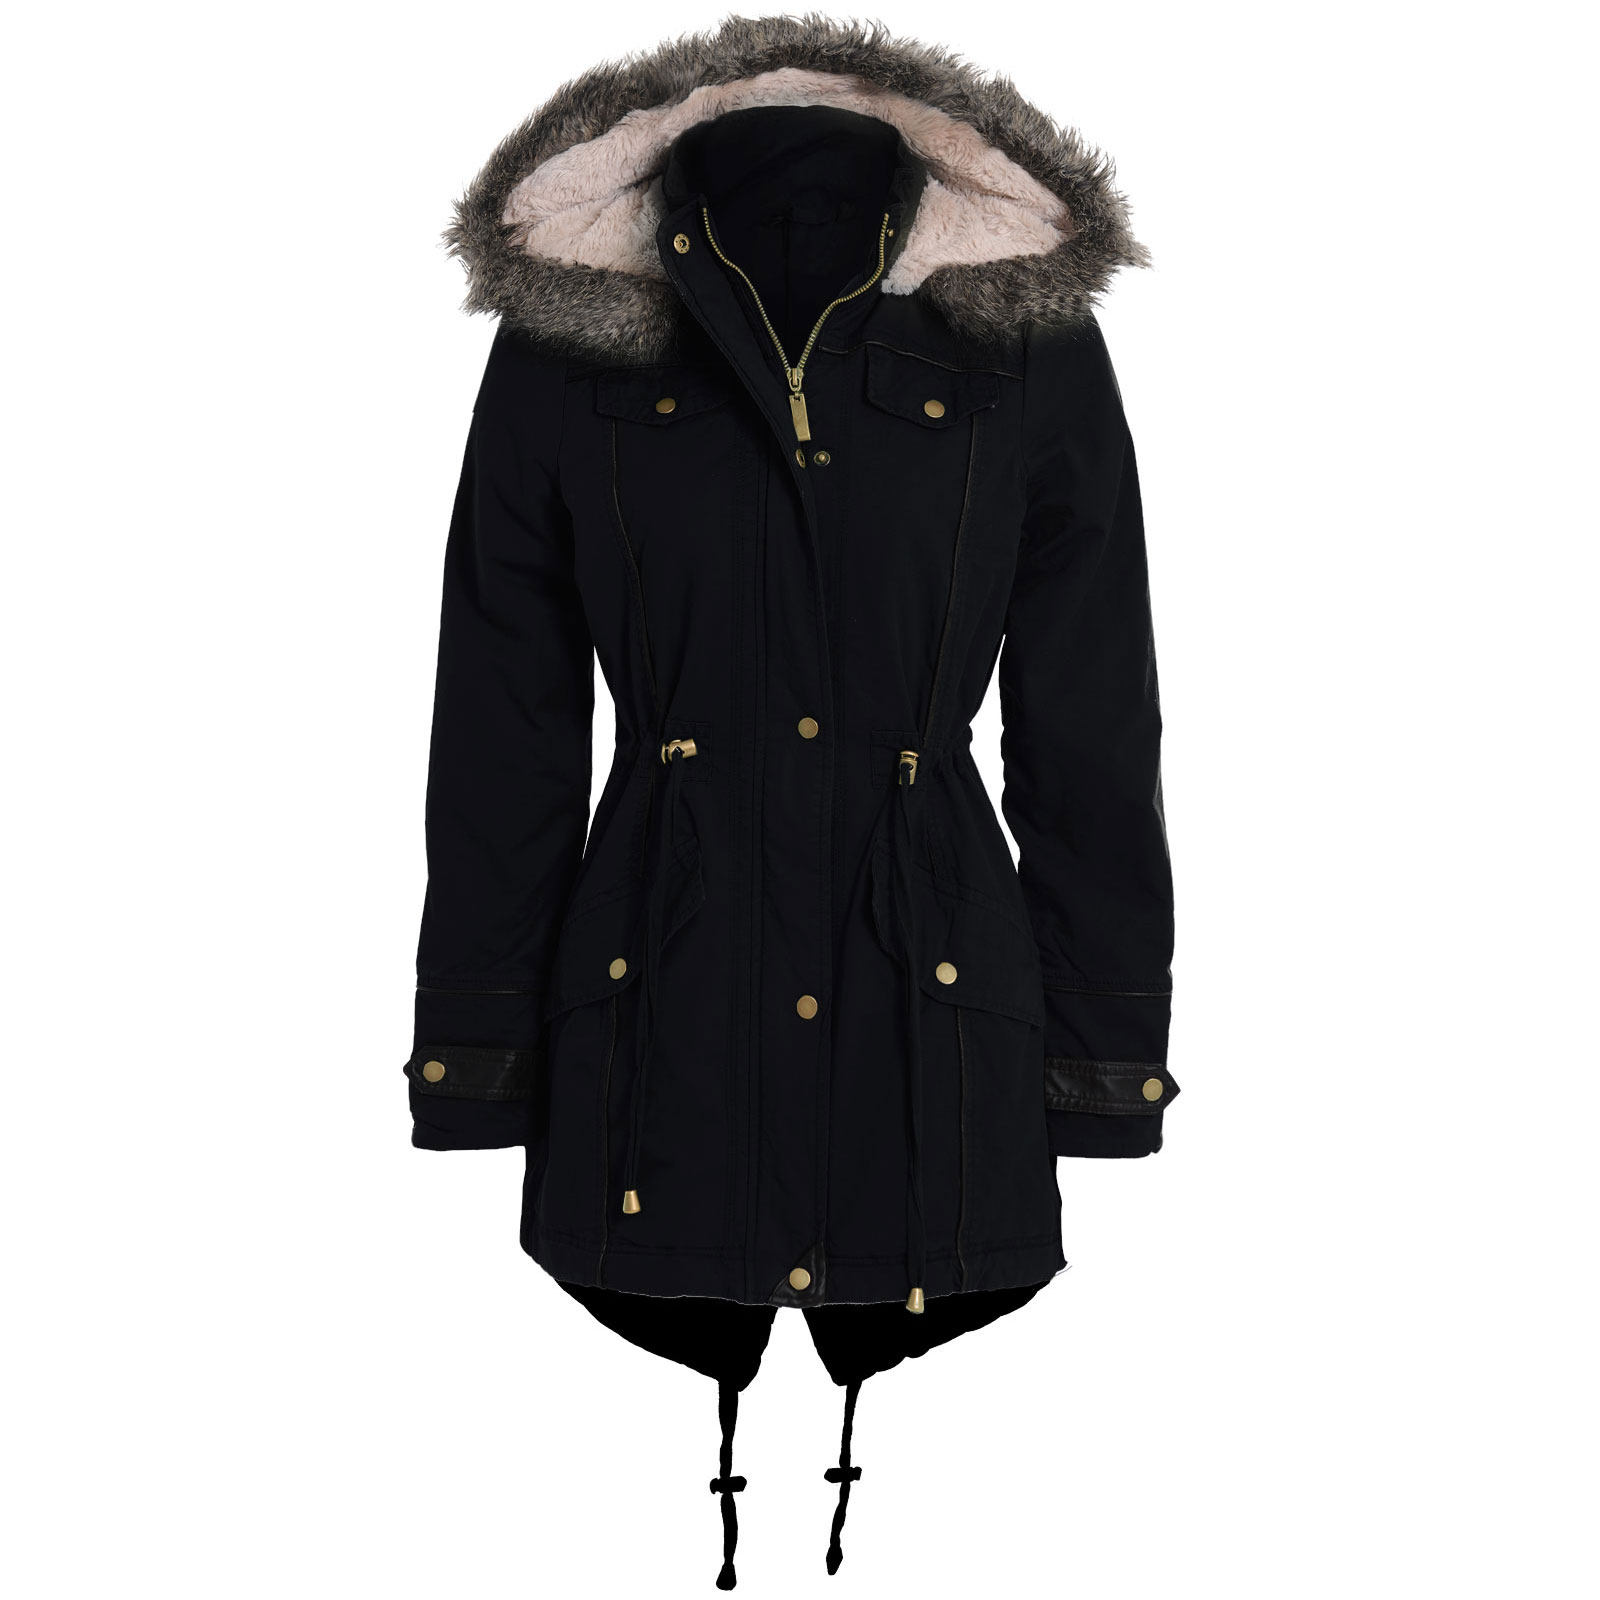 Womens black jacket fur hood – Novelties of modern fashion photo blog